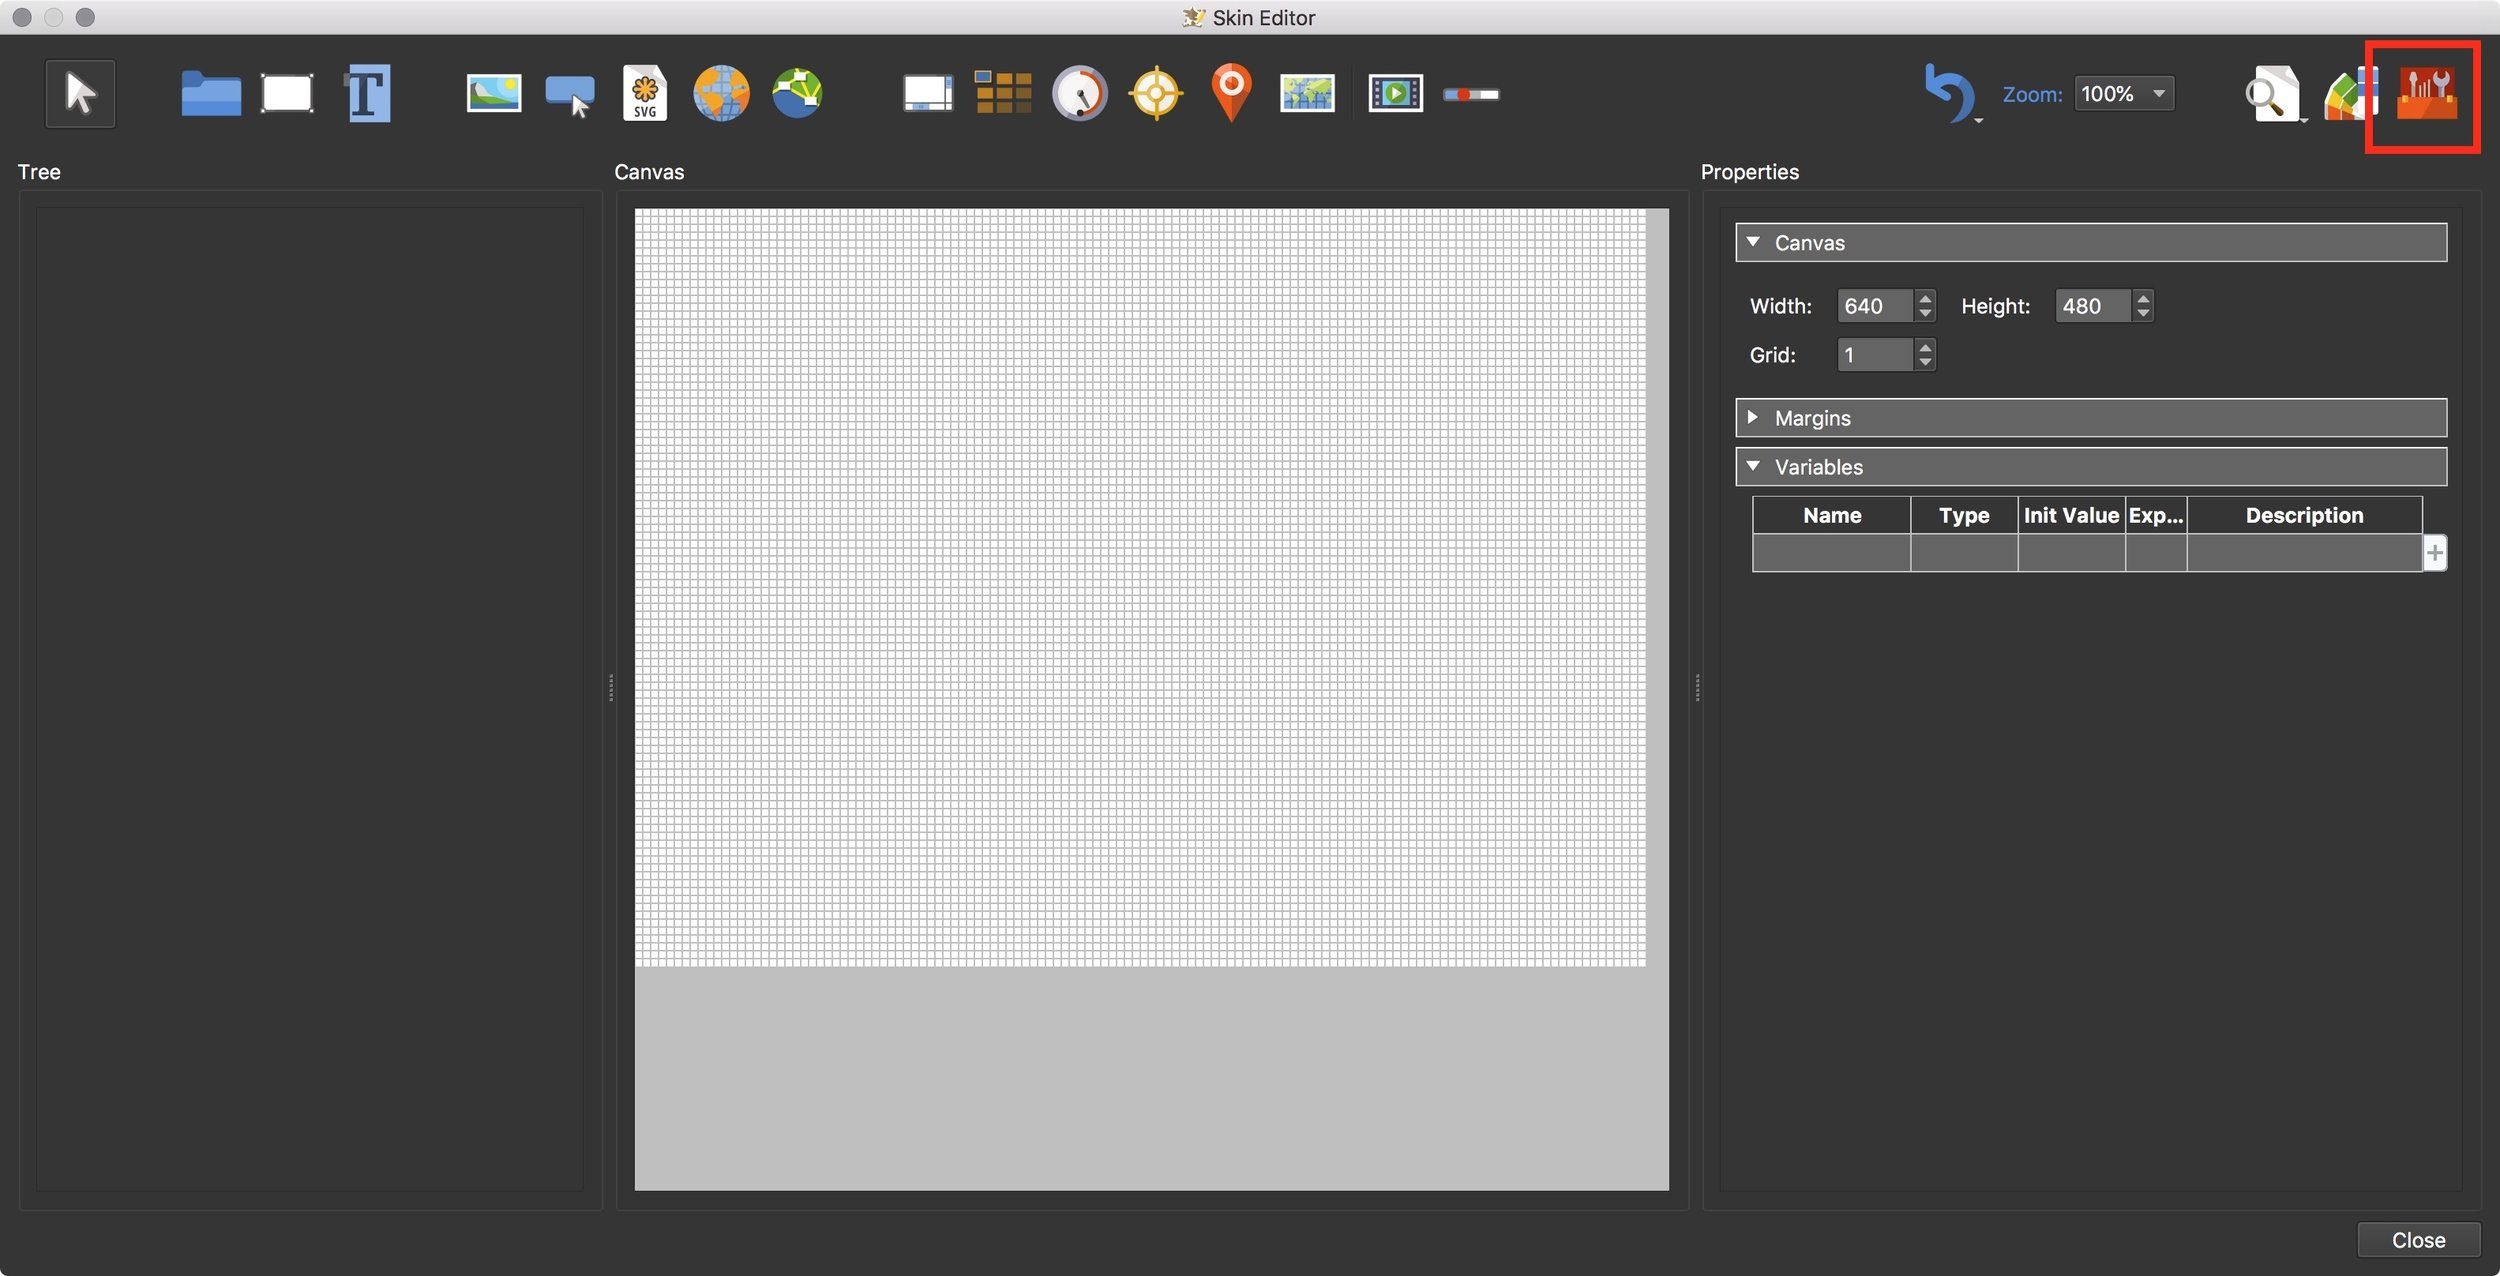 Figure #8: Skin Editor and Components Toolbox button